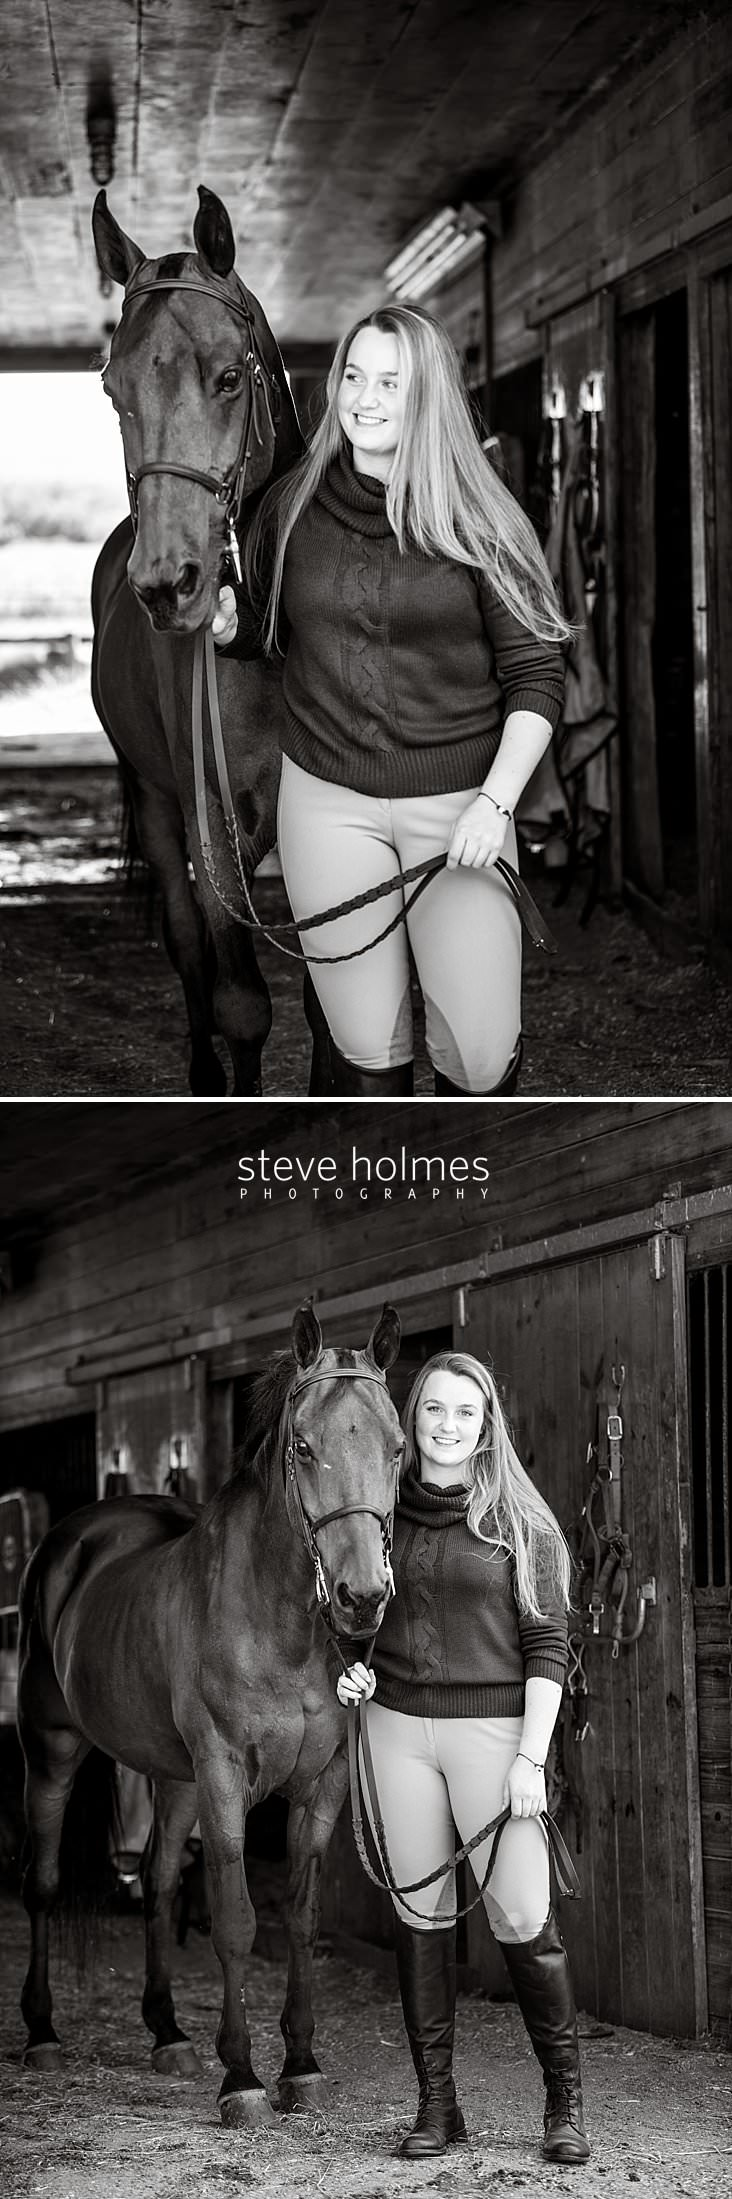 02_Black and white portrait of teen girl looking to the side in the barn with her horse.jpg